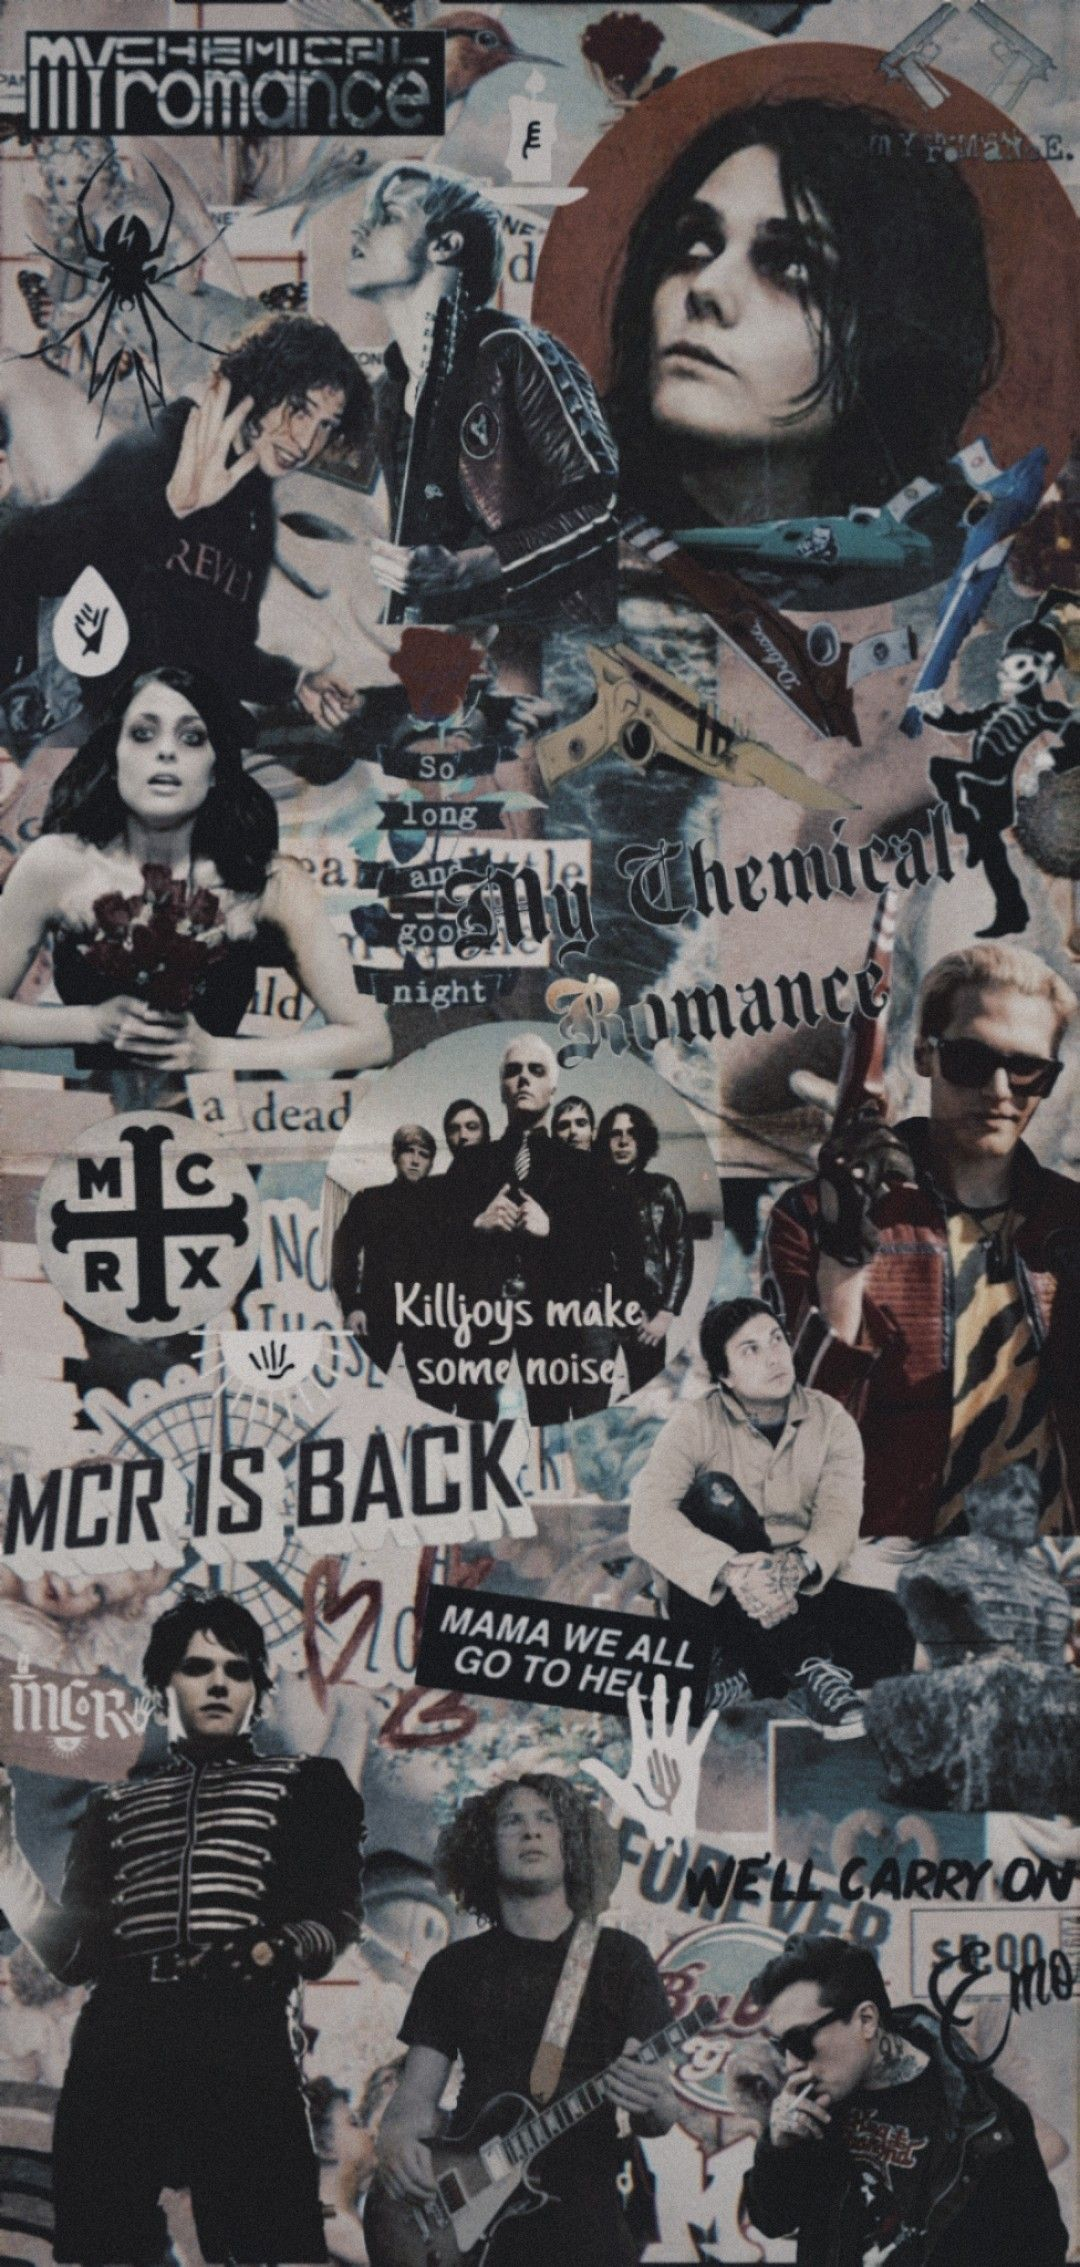 Pin by A L on my chemical romance in 2020 My chemical romance 1080x2267